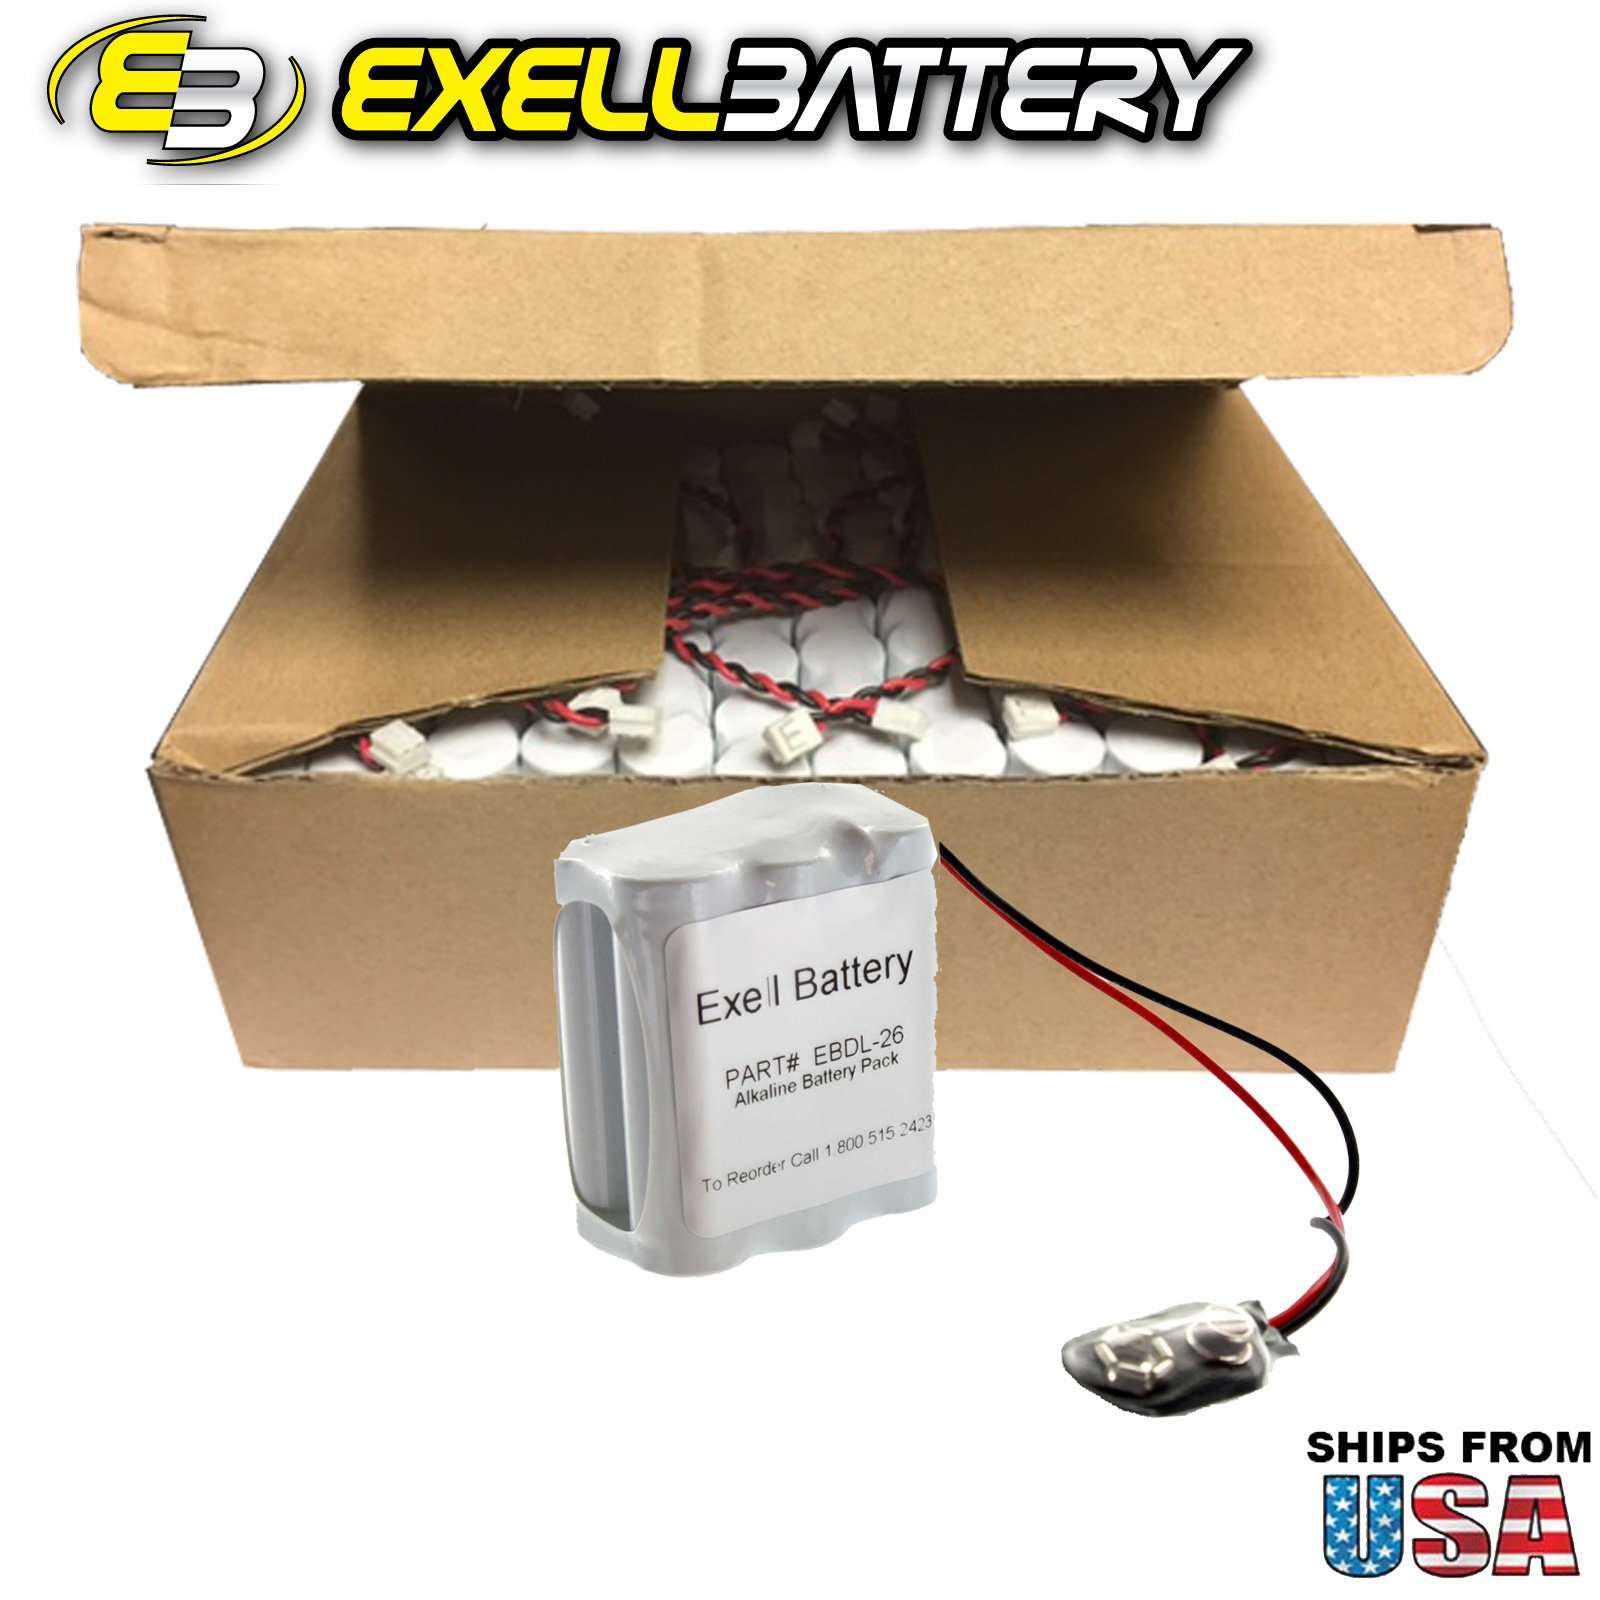 120pcs Exell Battery Door Lock 9V 6-Cell Battery Pack Fits Vingcard 12 HTL-26 USA SHIP